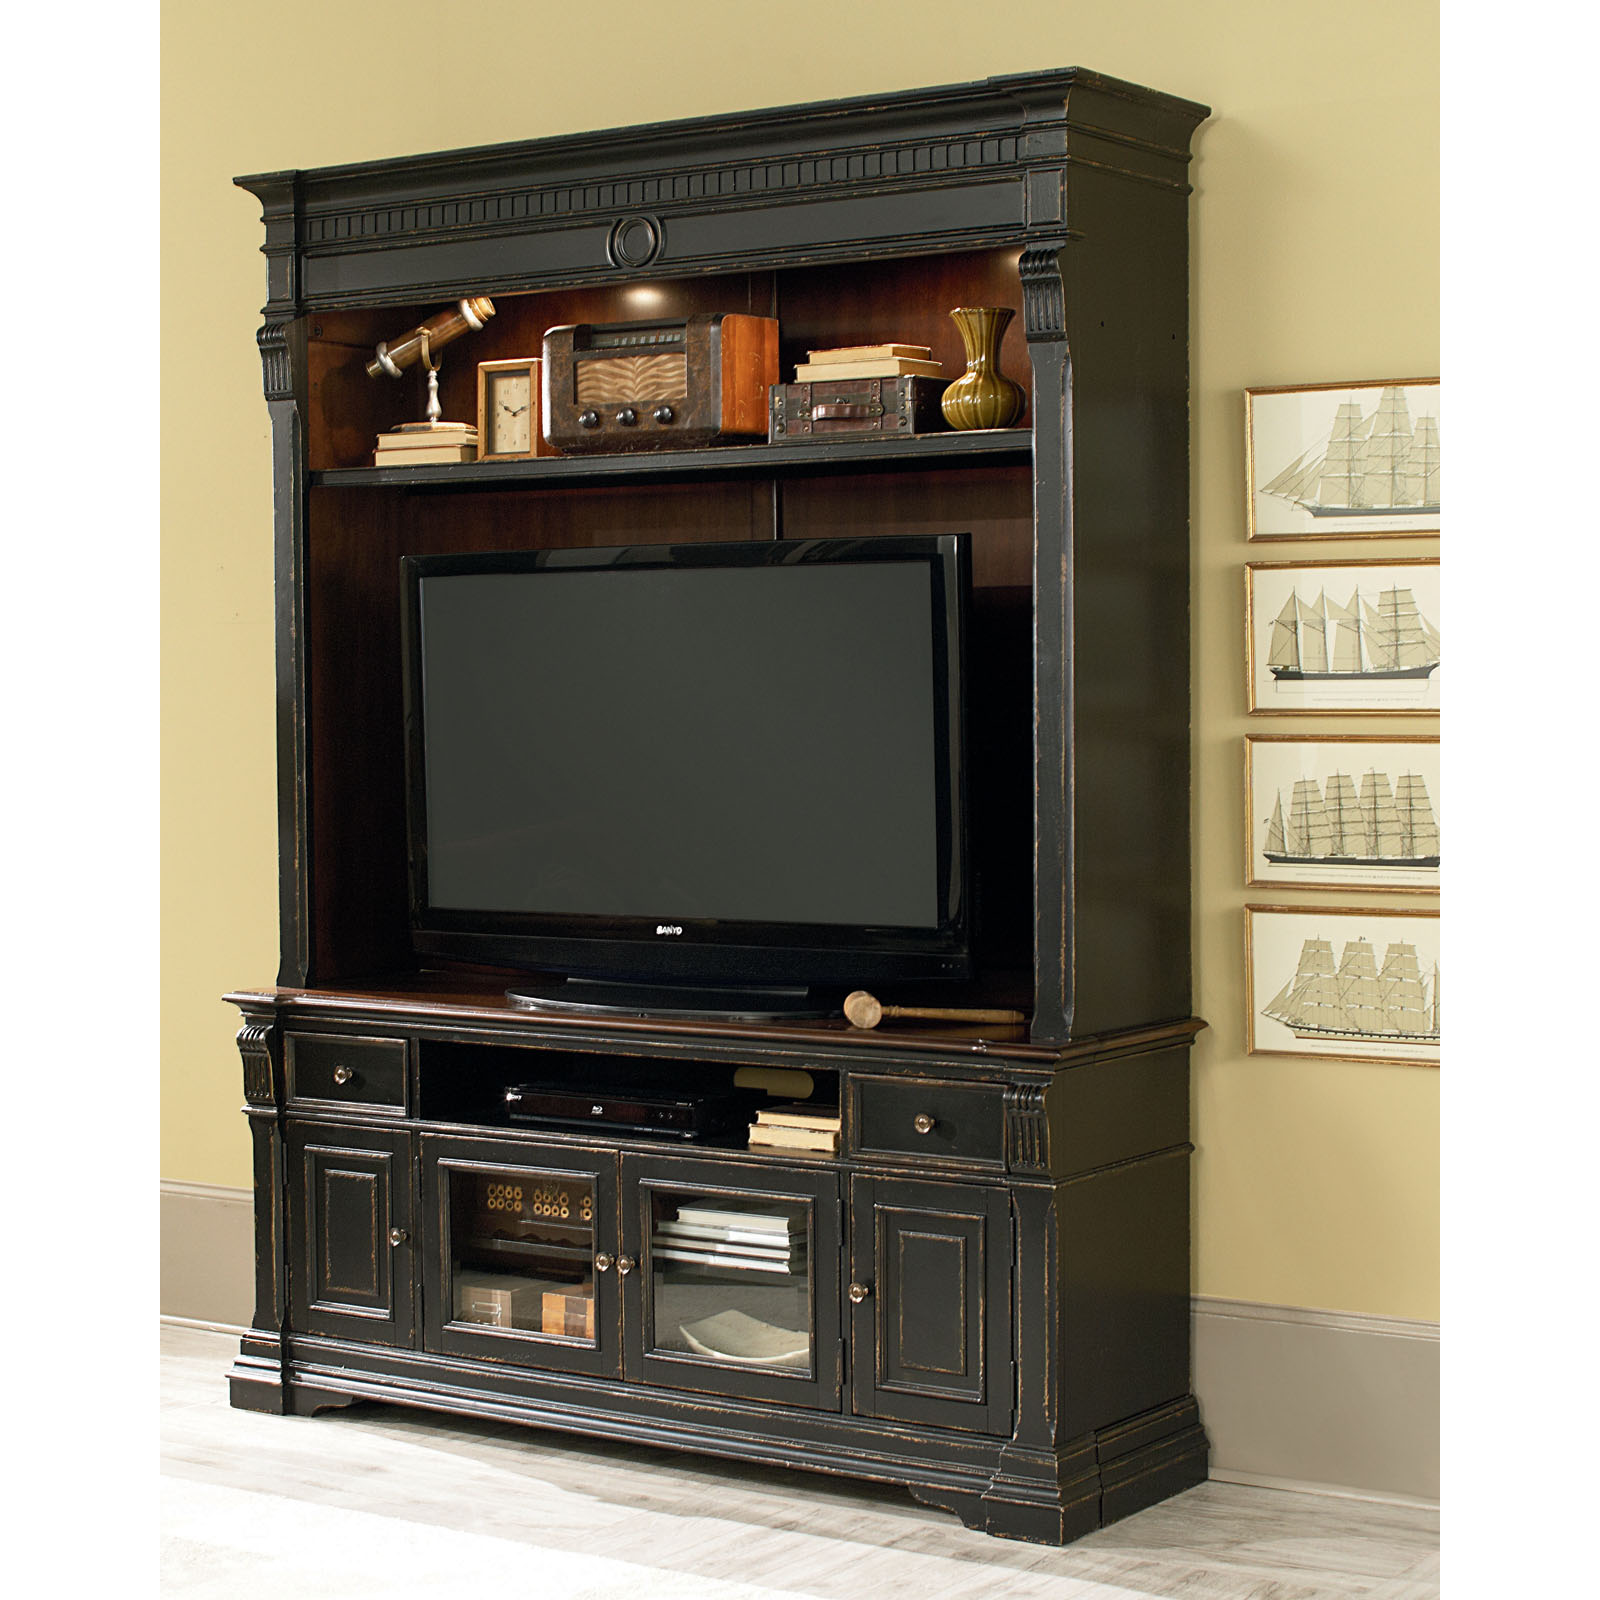 Legends Furniture Manchester Entertainment Center Rustic Black